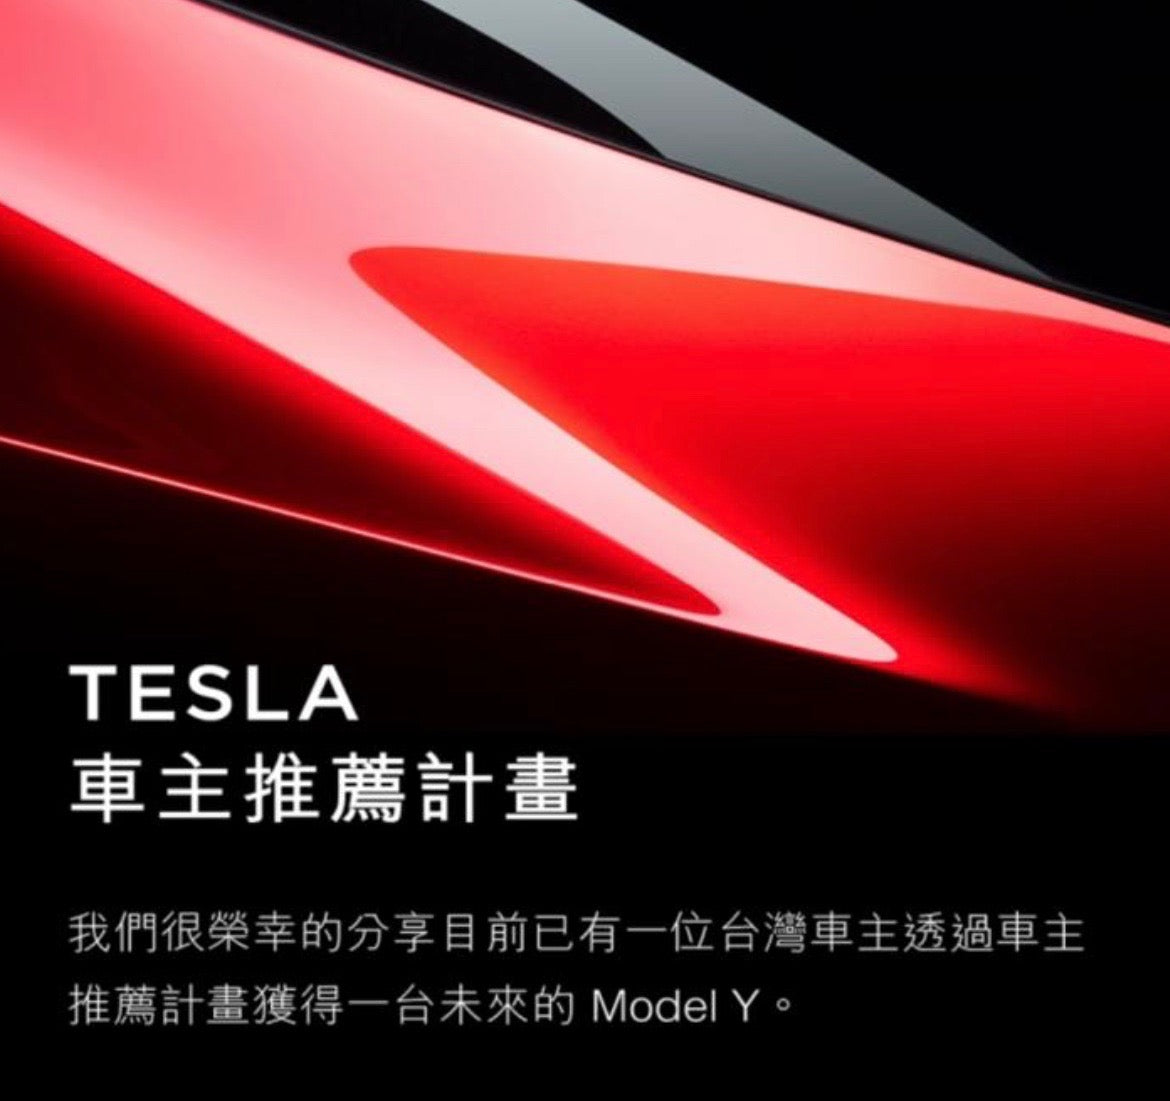 Tesla-ModelY-Referral-Winner-Taiwan